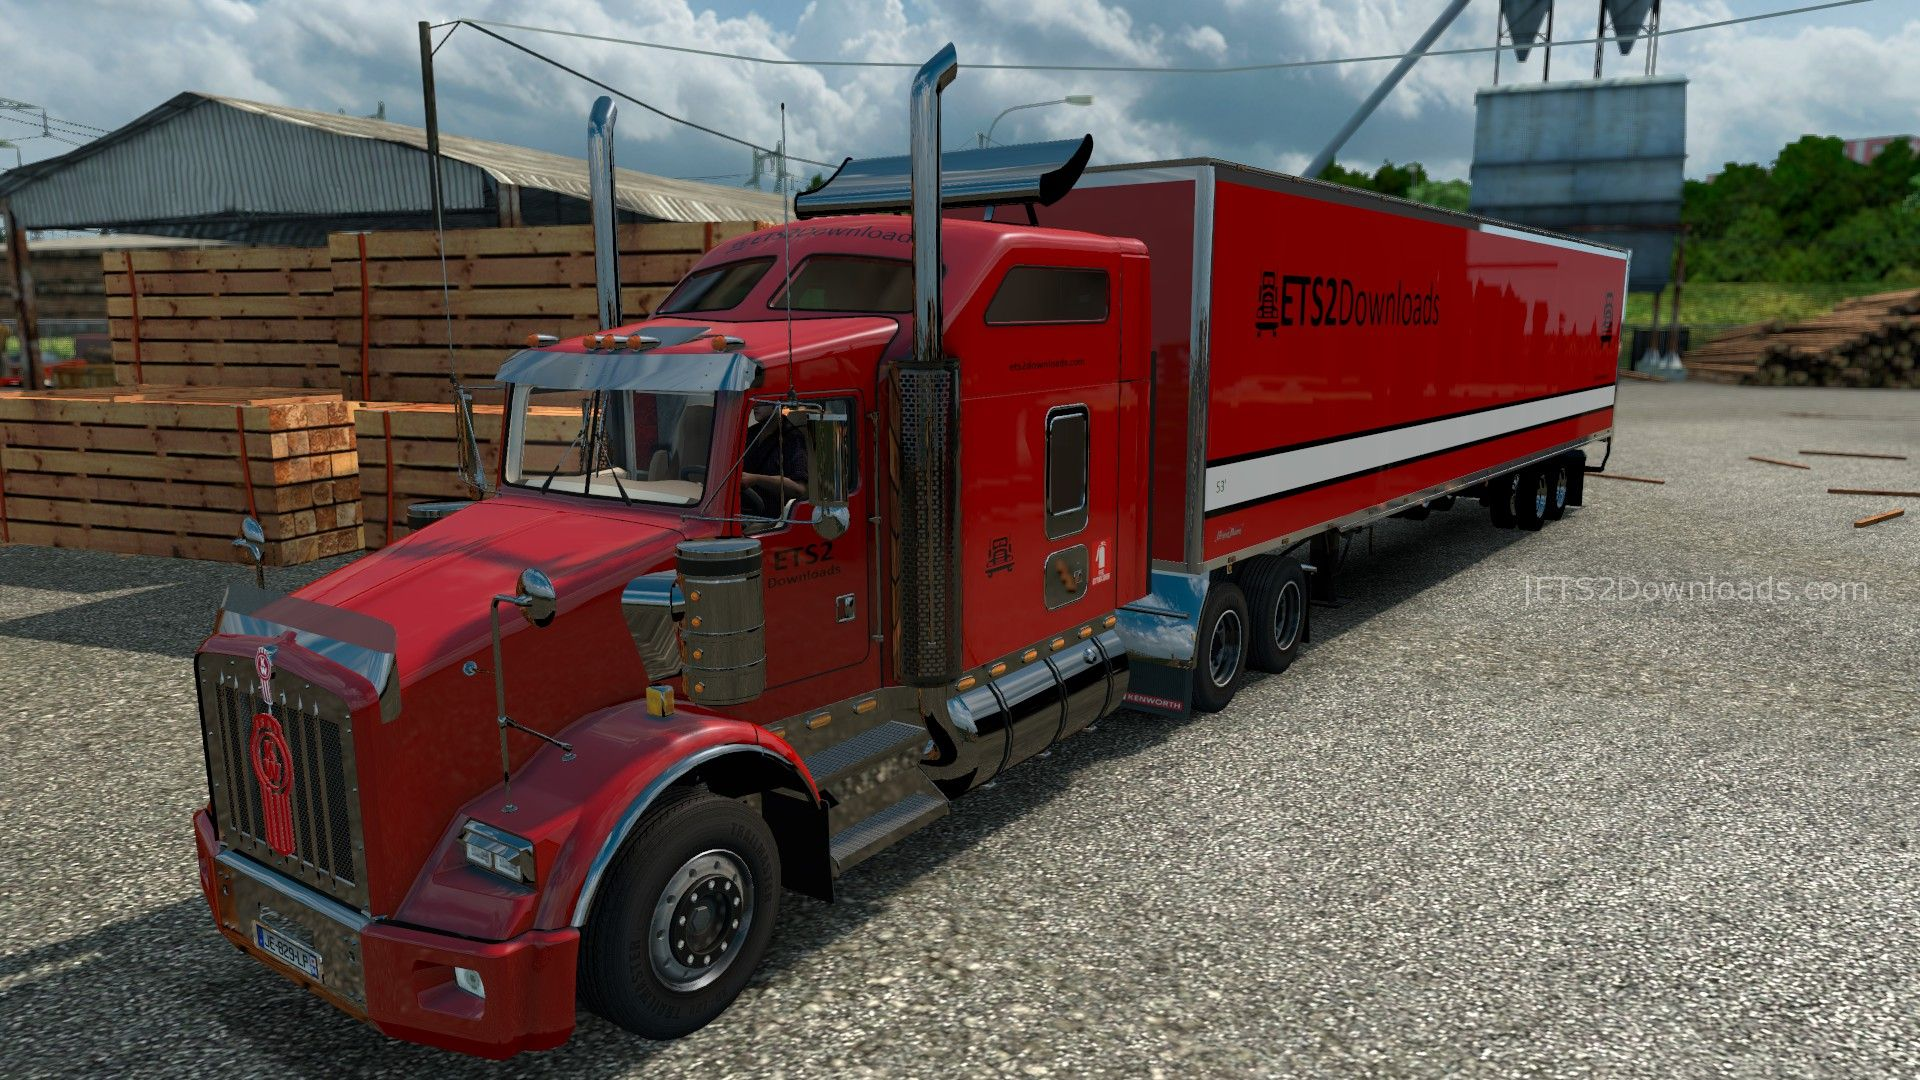 ets2downloads-red-skin-pack-for-kenworth-t800-1